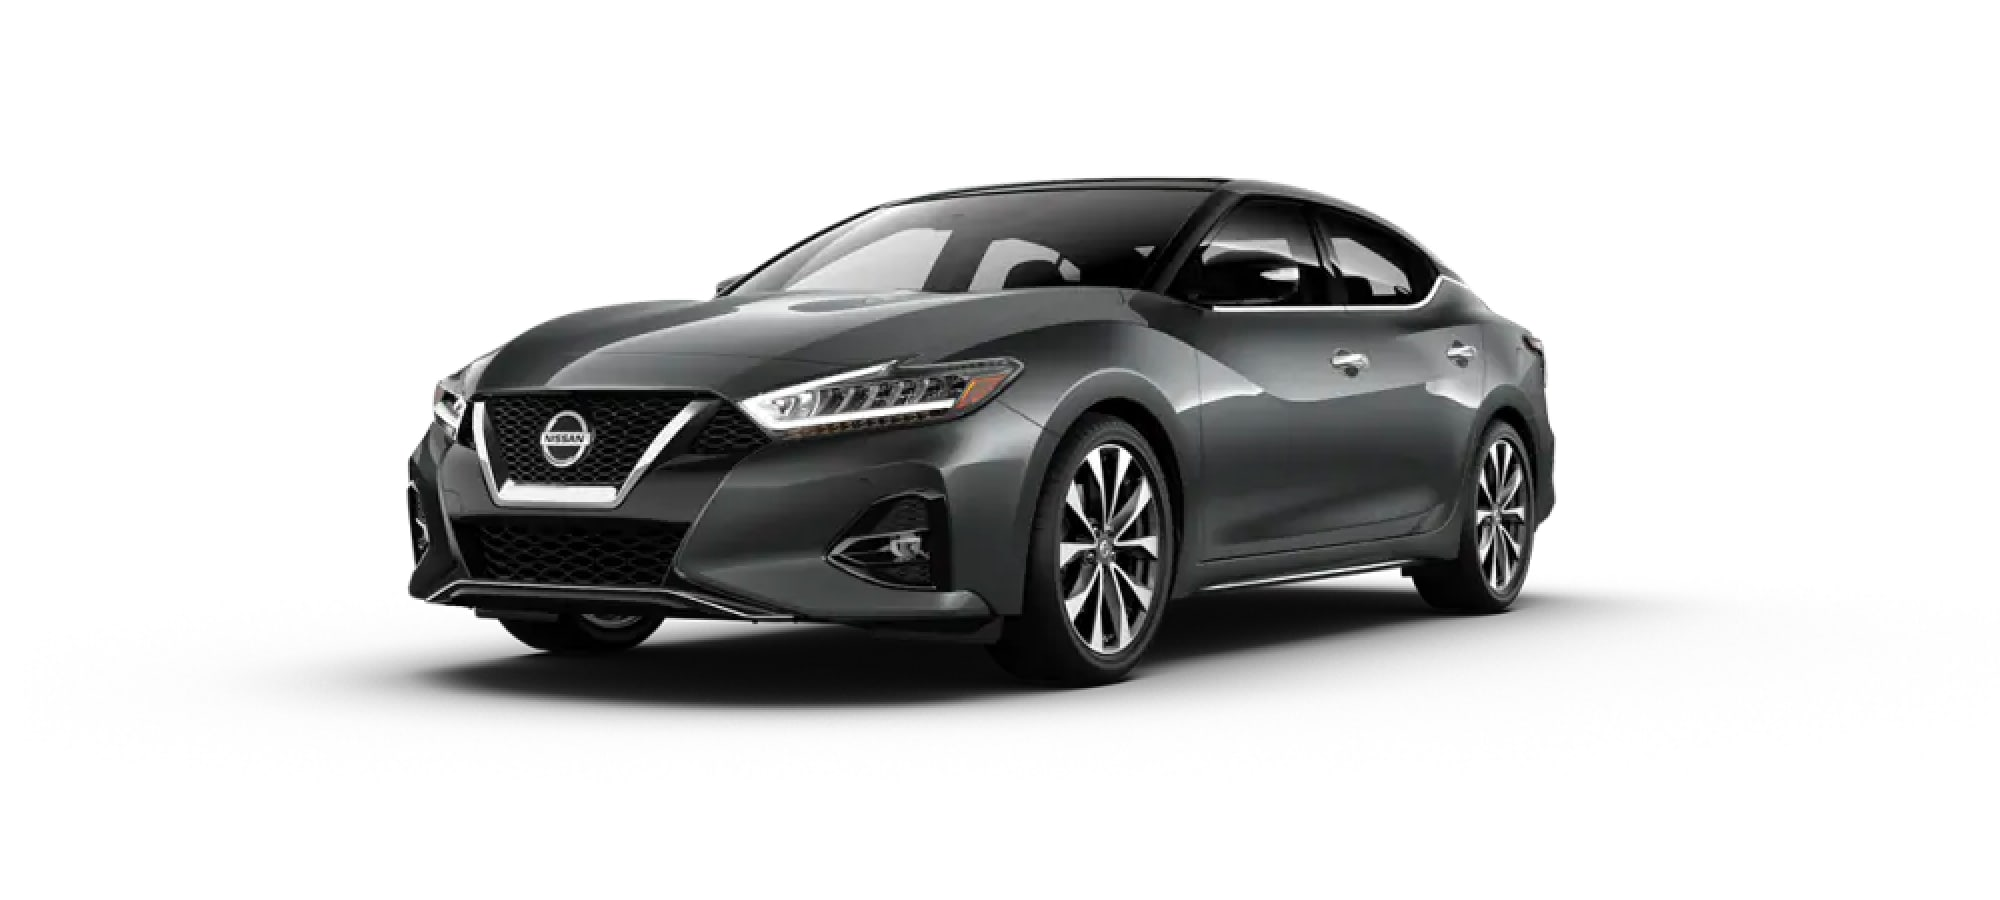 2020 Nissan Maxima in Gun Metallic